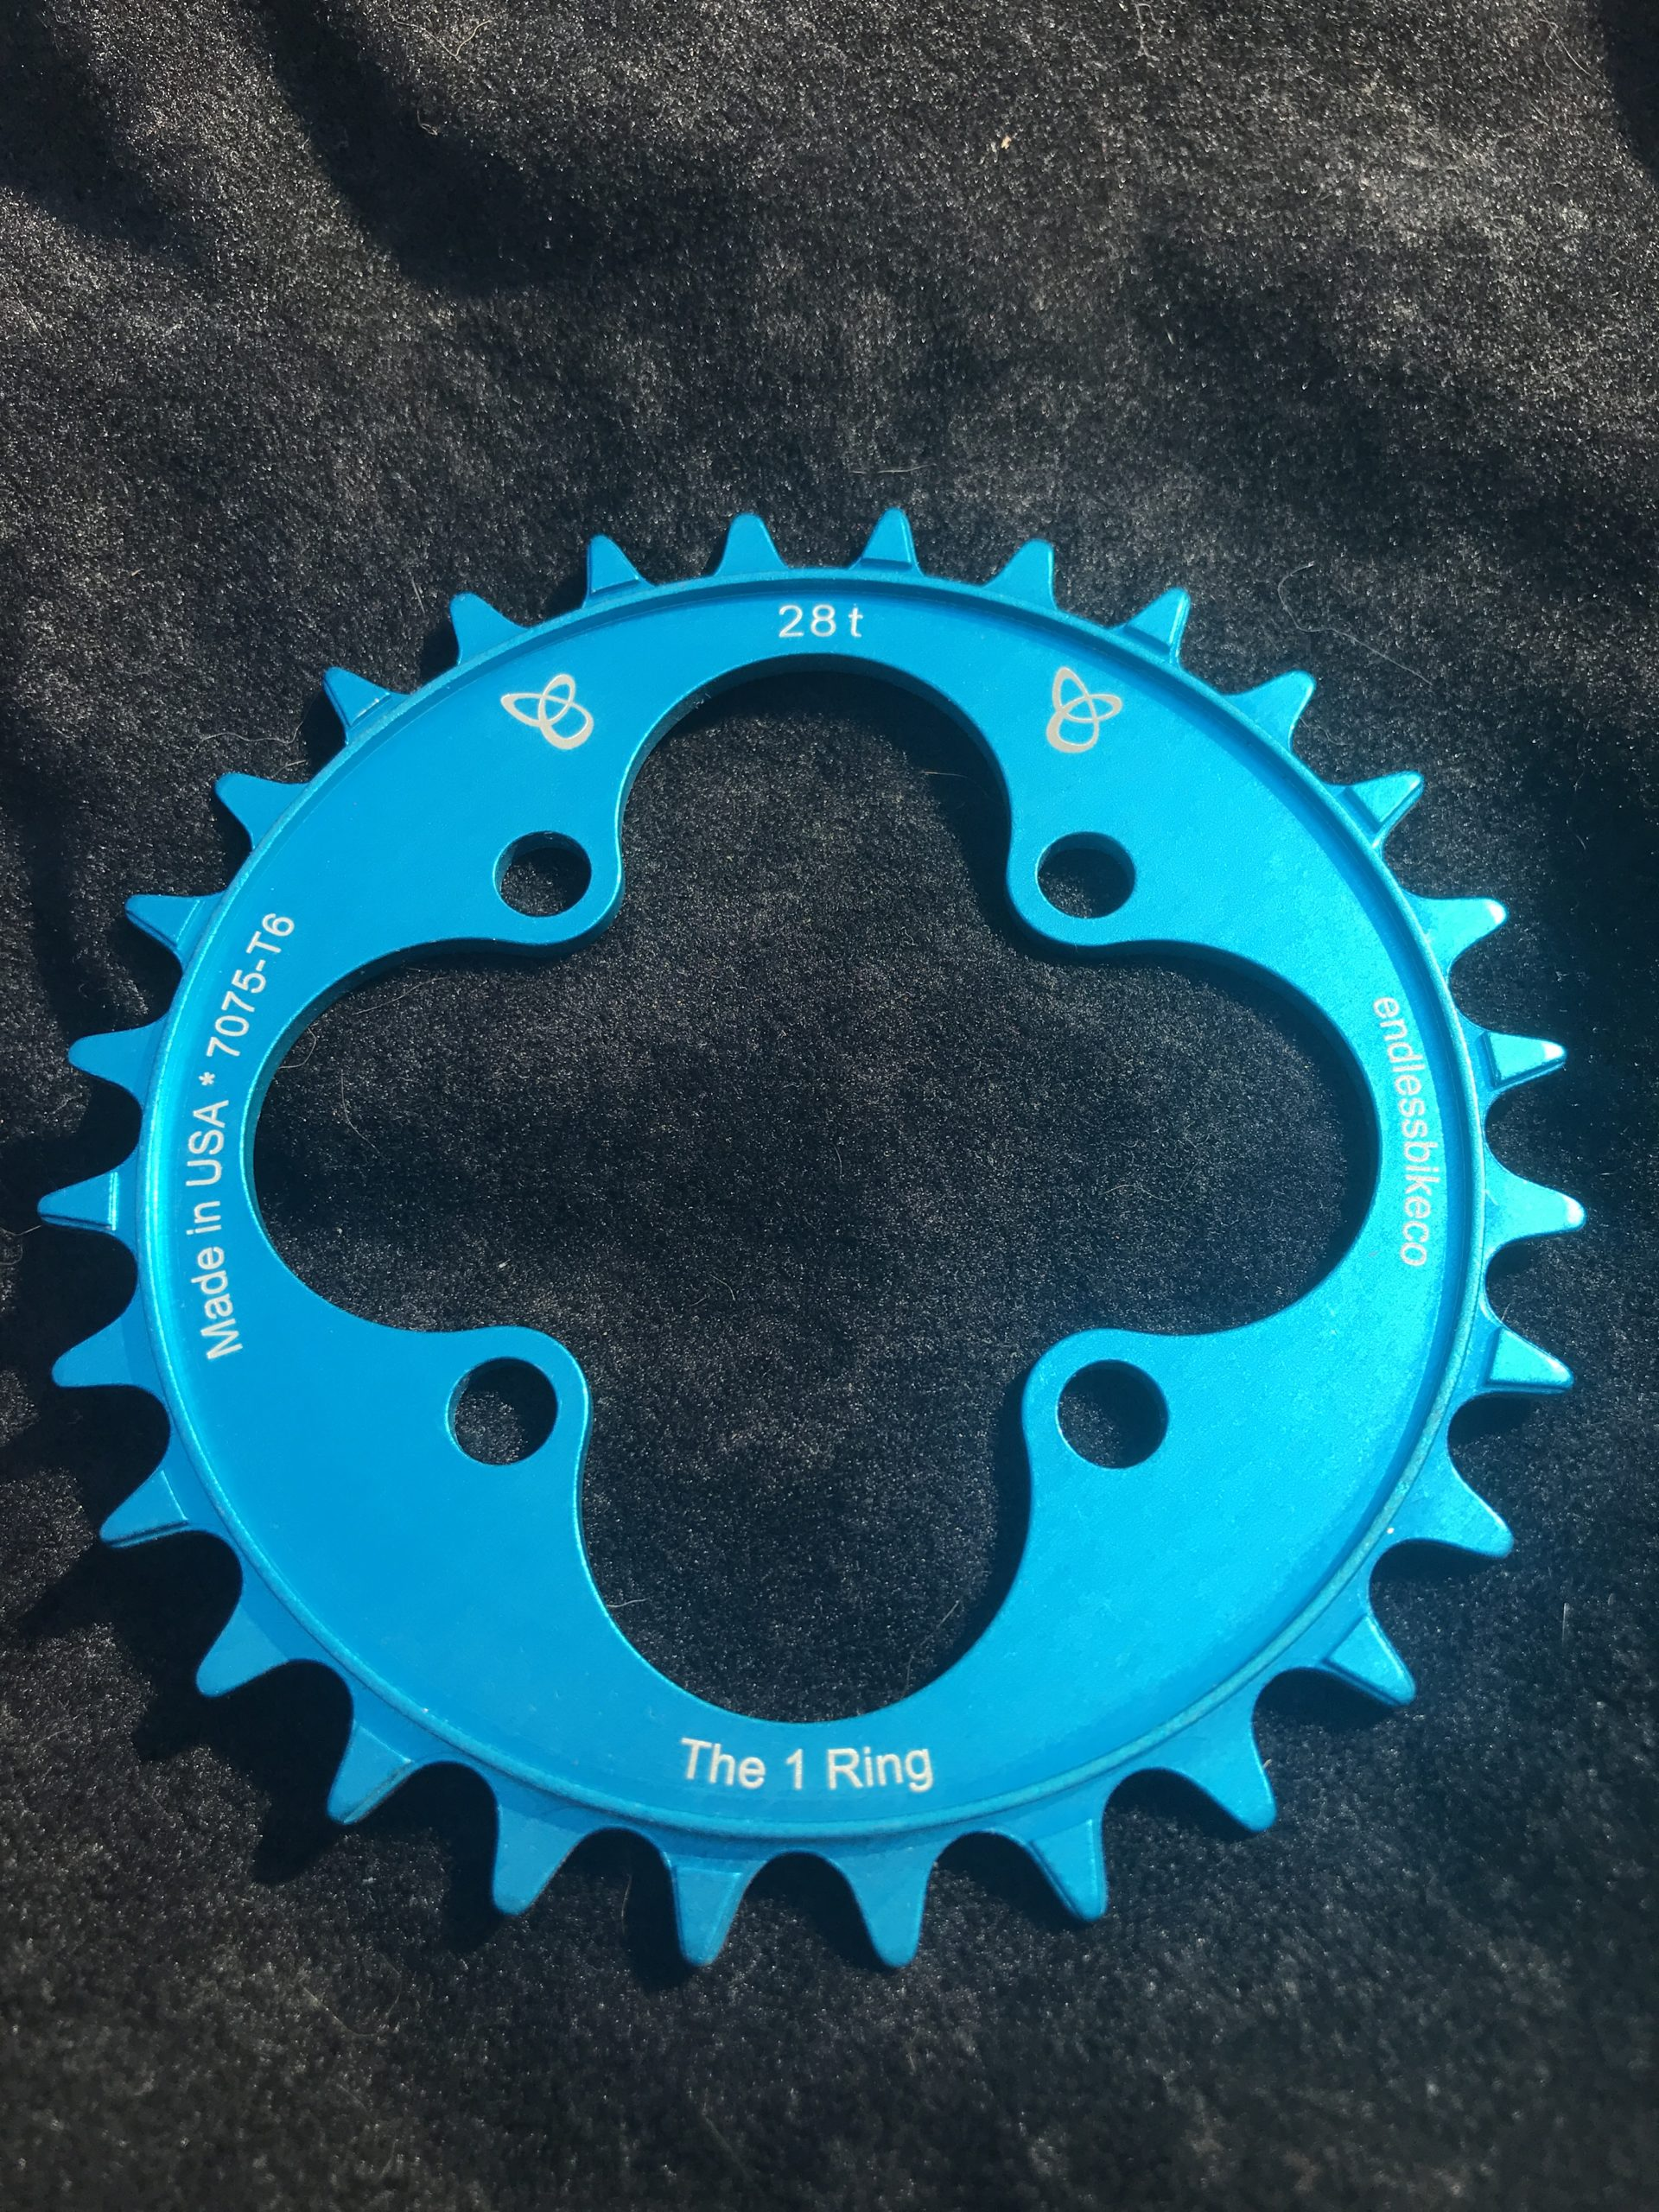 28t chainring teal